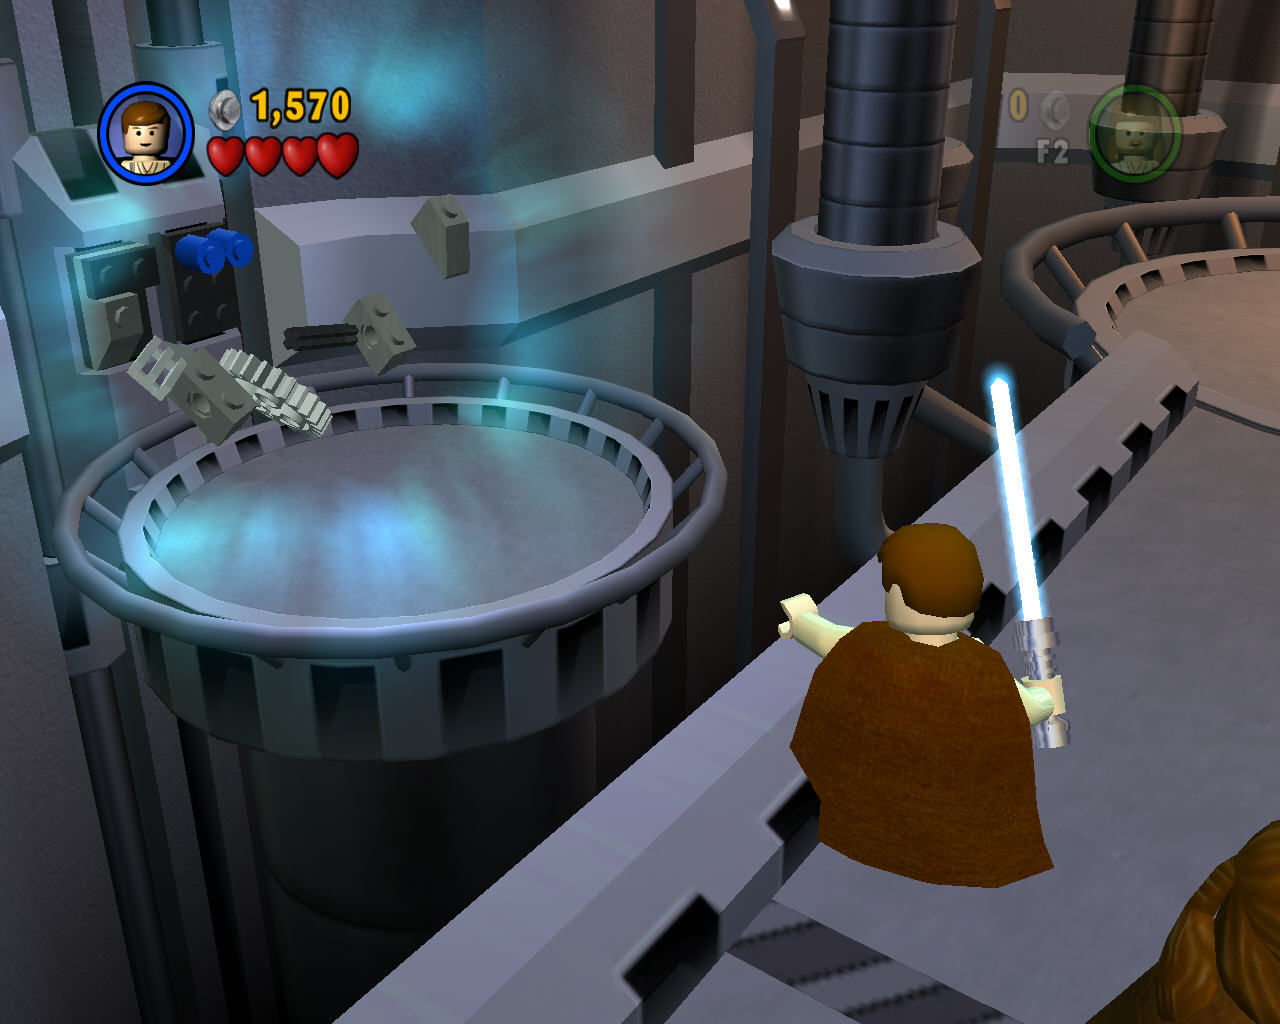 http://www.mobygames.com/images/shots/l/108541-lego-star-wars-the-video-game-windows-screenshot-use-the-force.jpg